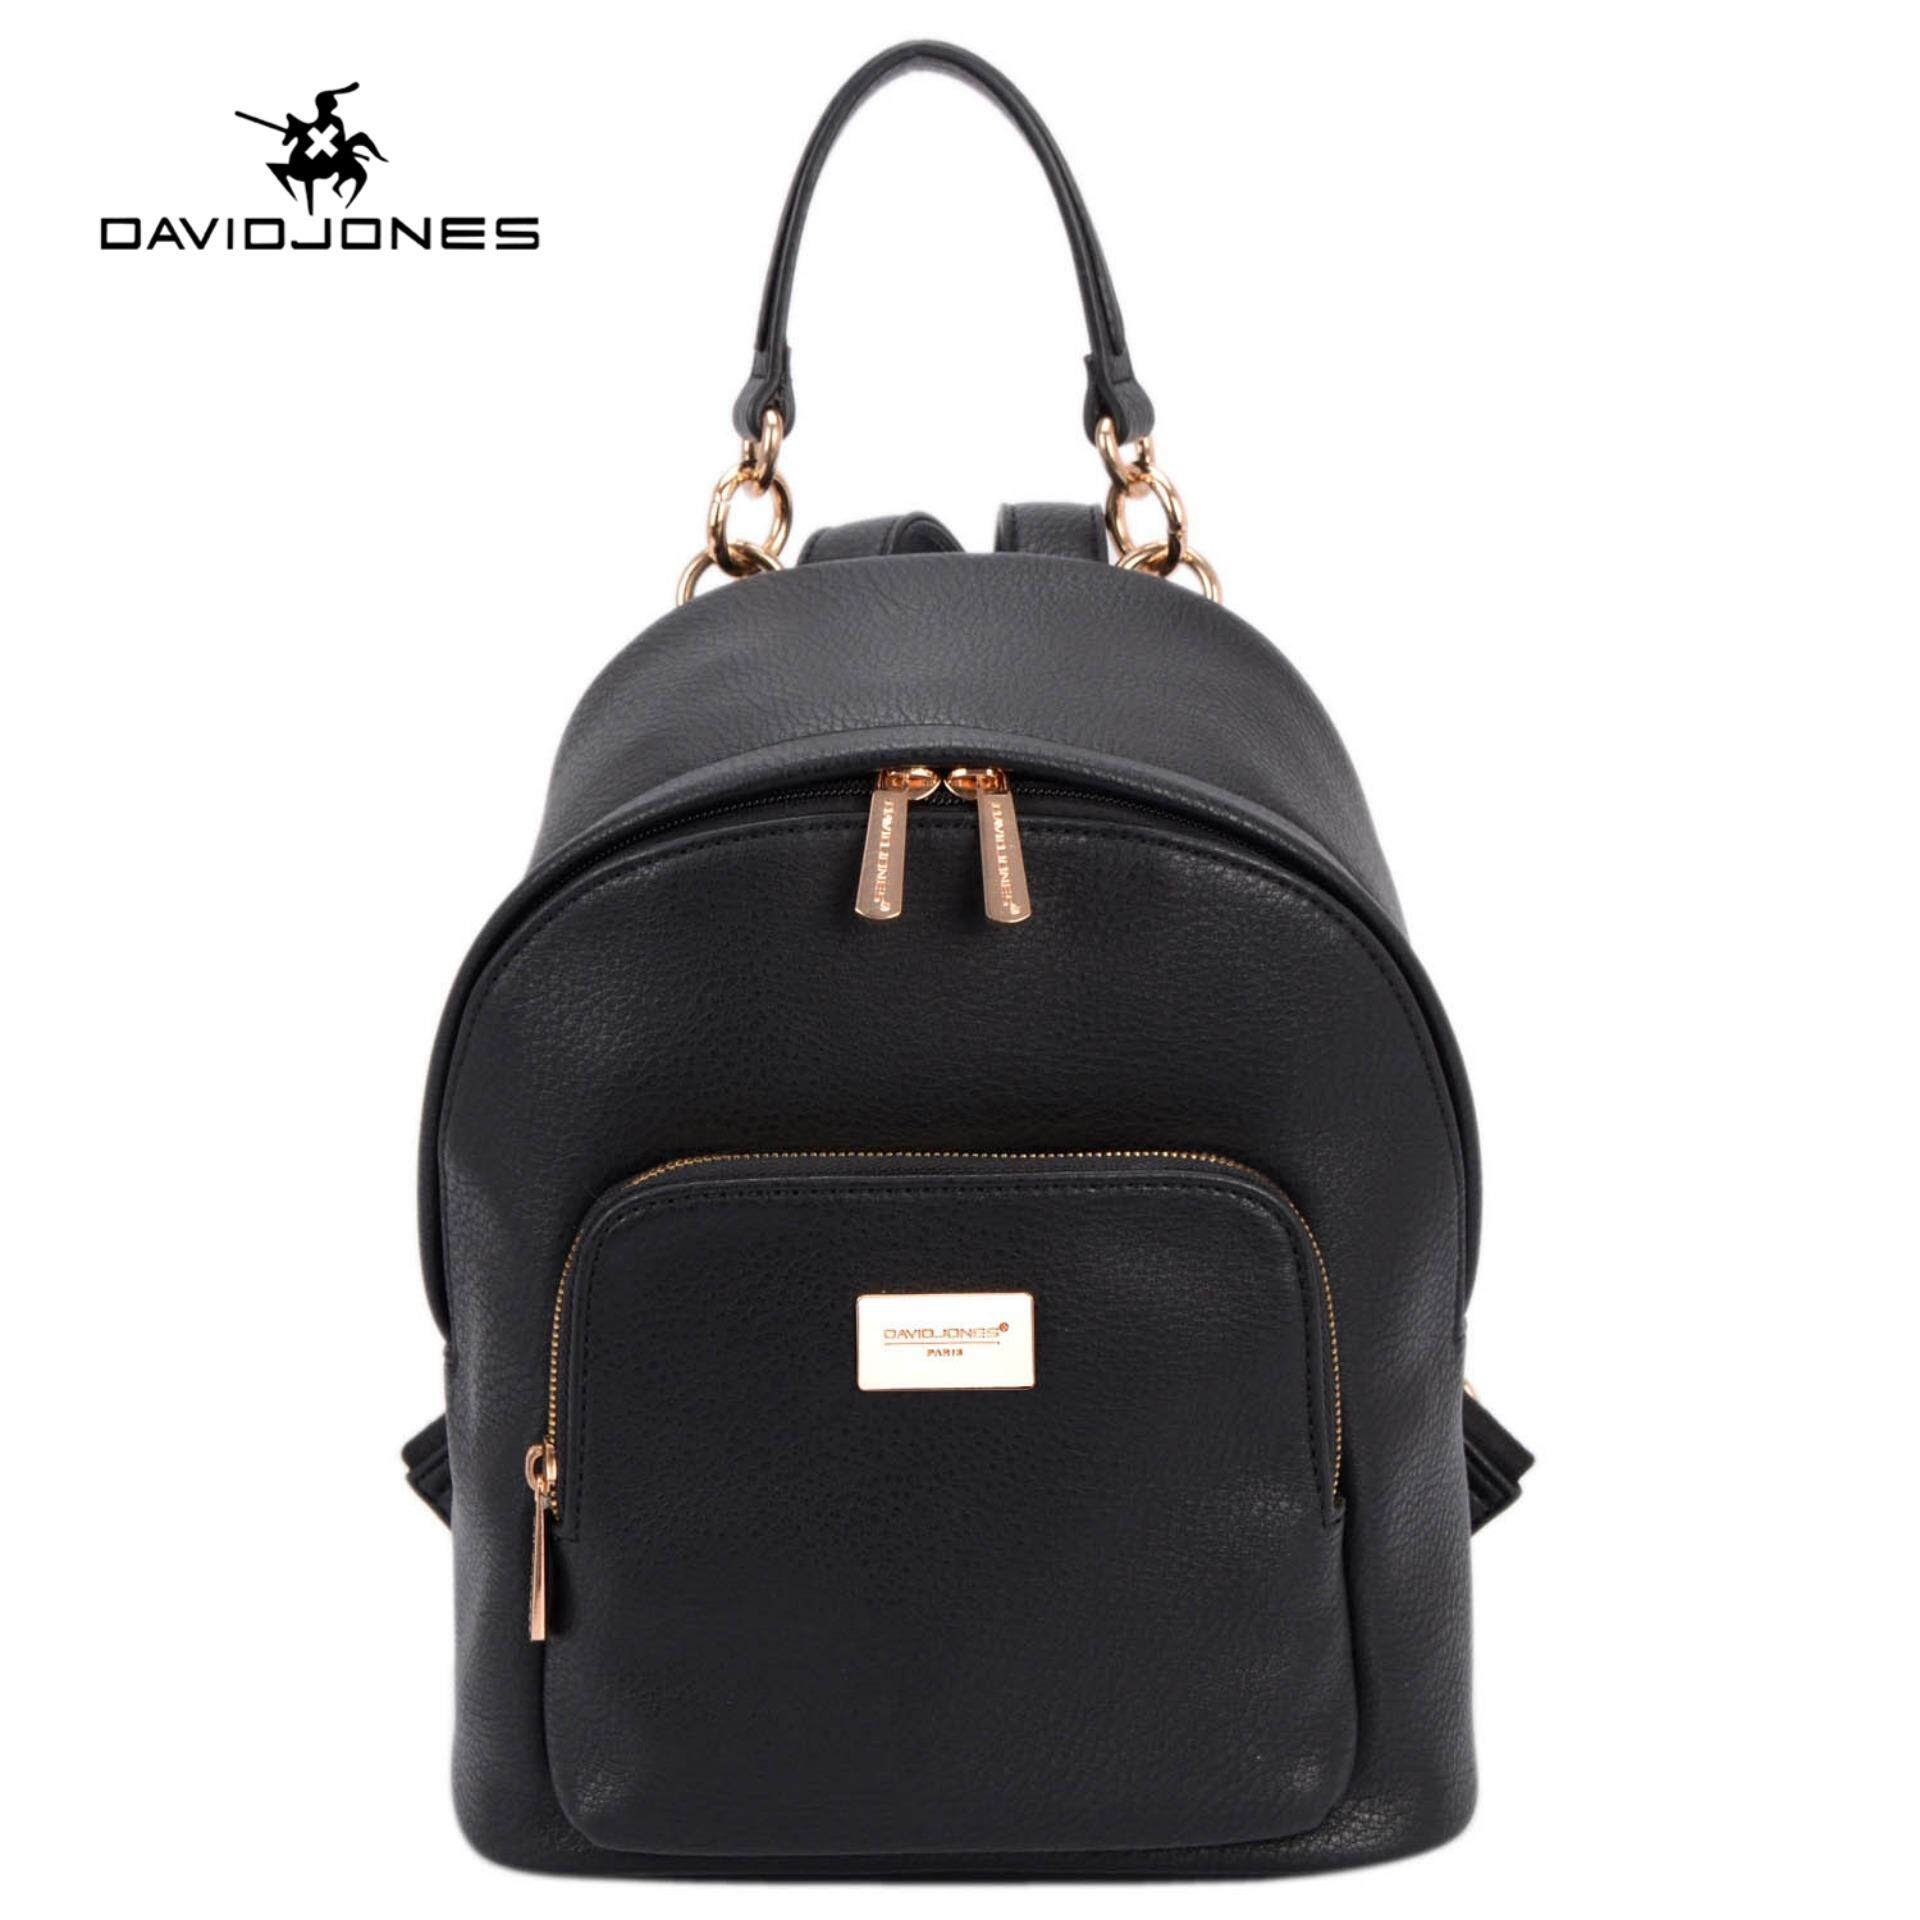 Davidjones Women Backpack Pu Leather Female Shoulder Bag Large Lady Plain Back Casual Book